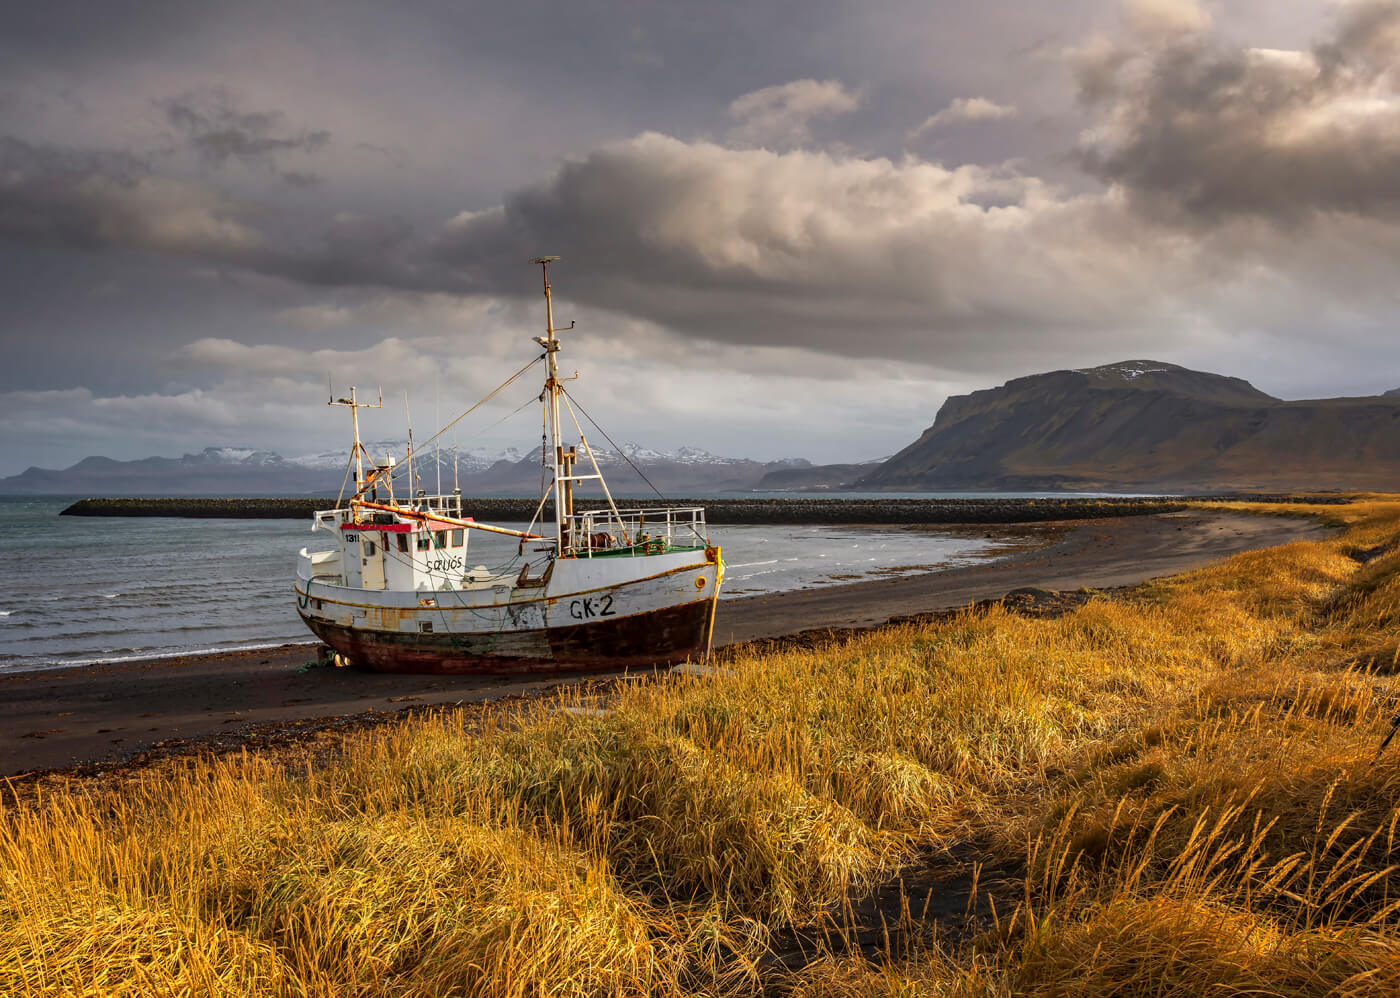 Beached, Rif, Iceland